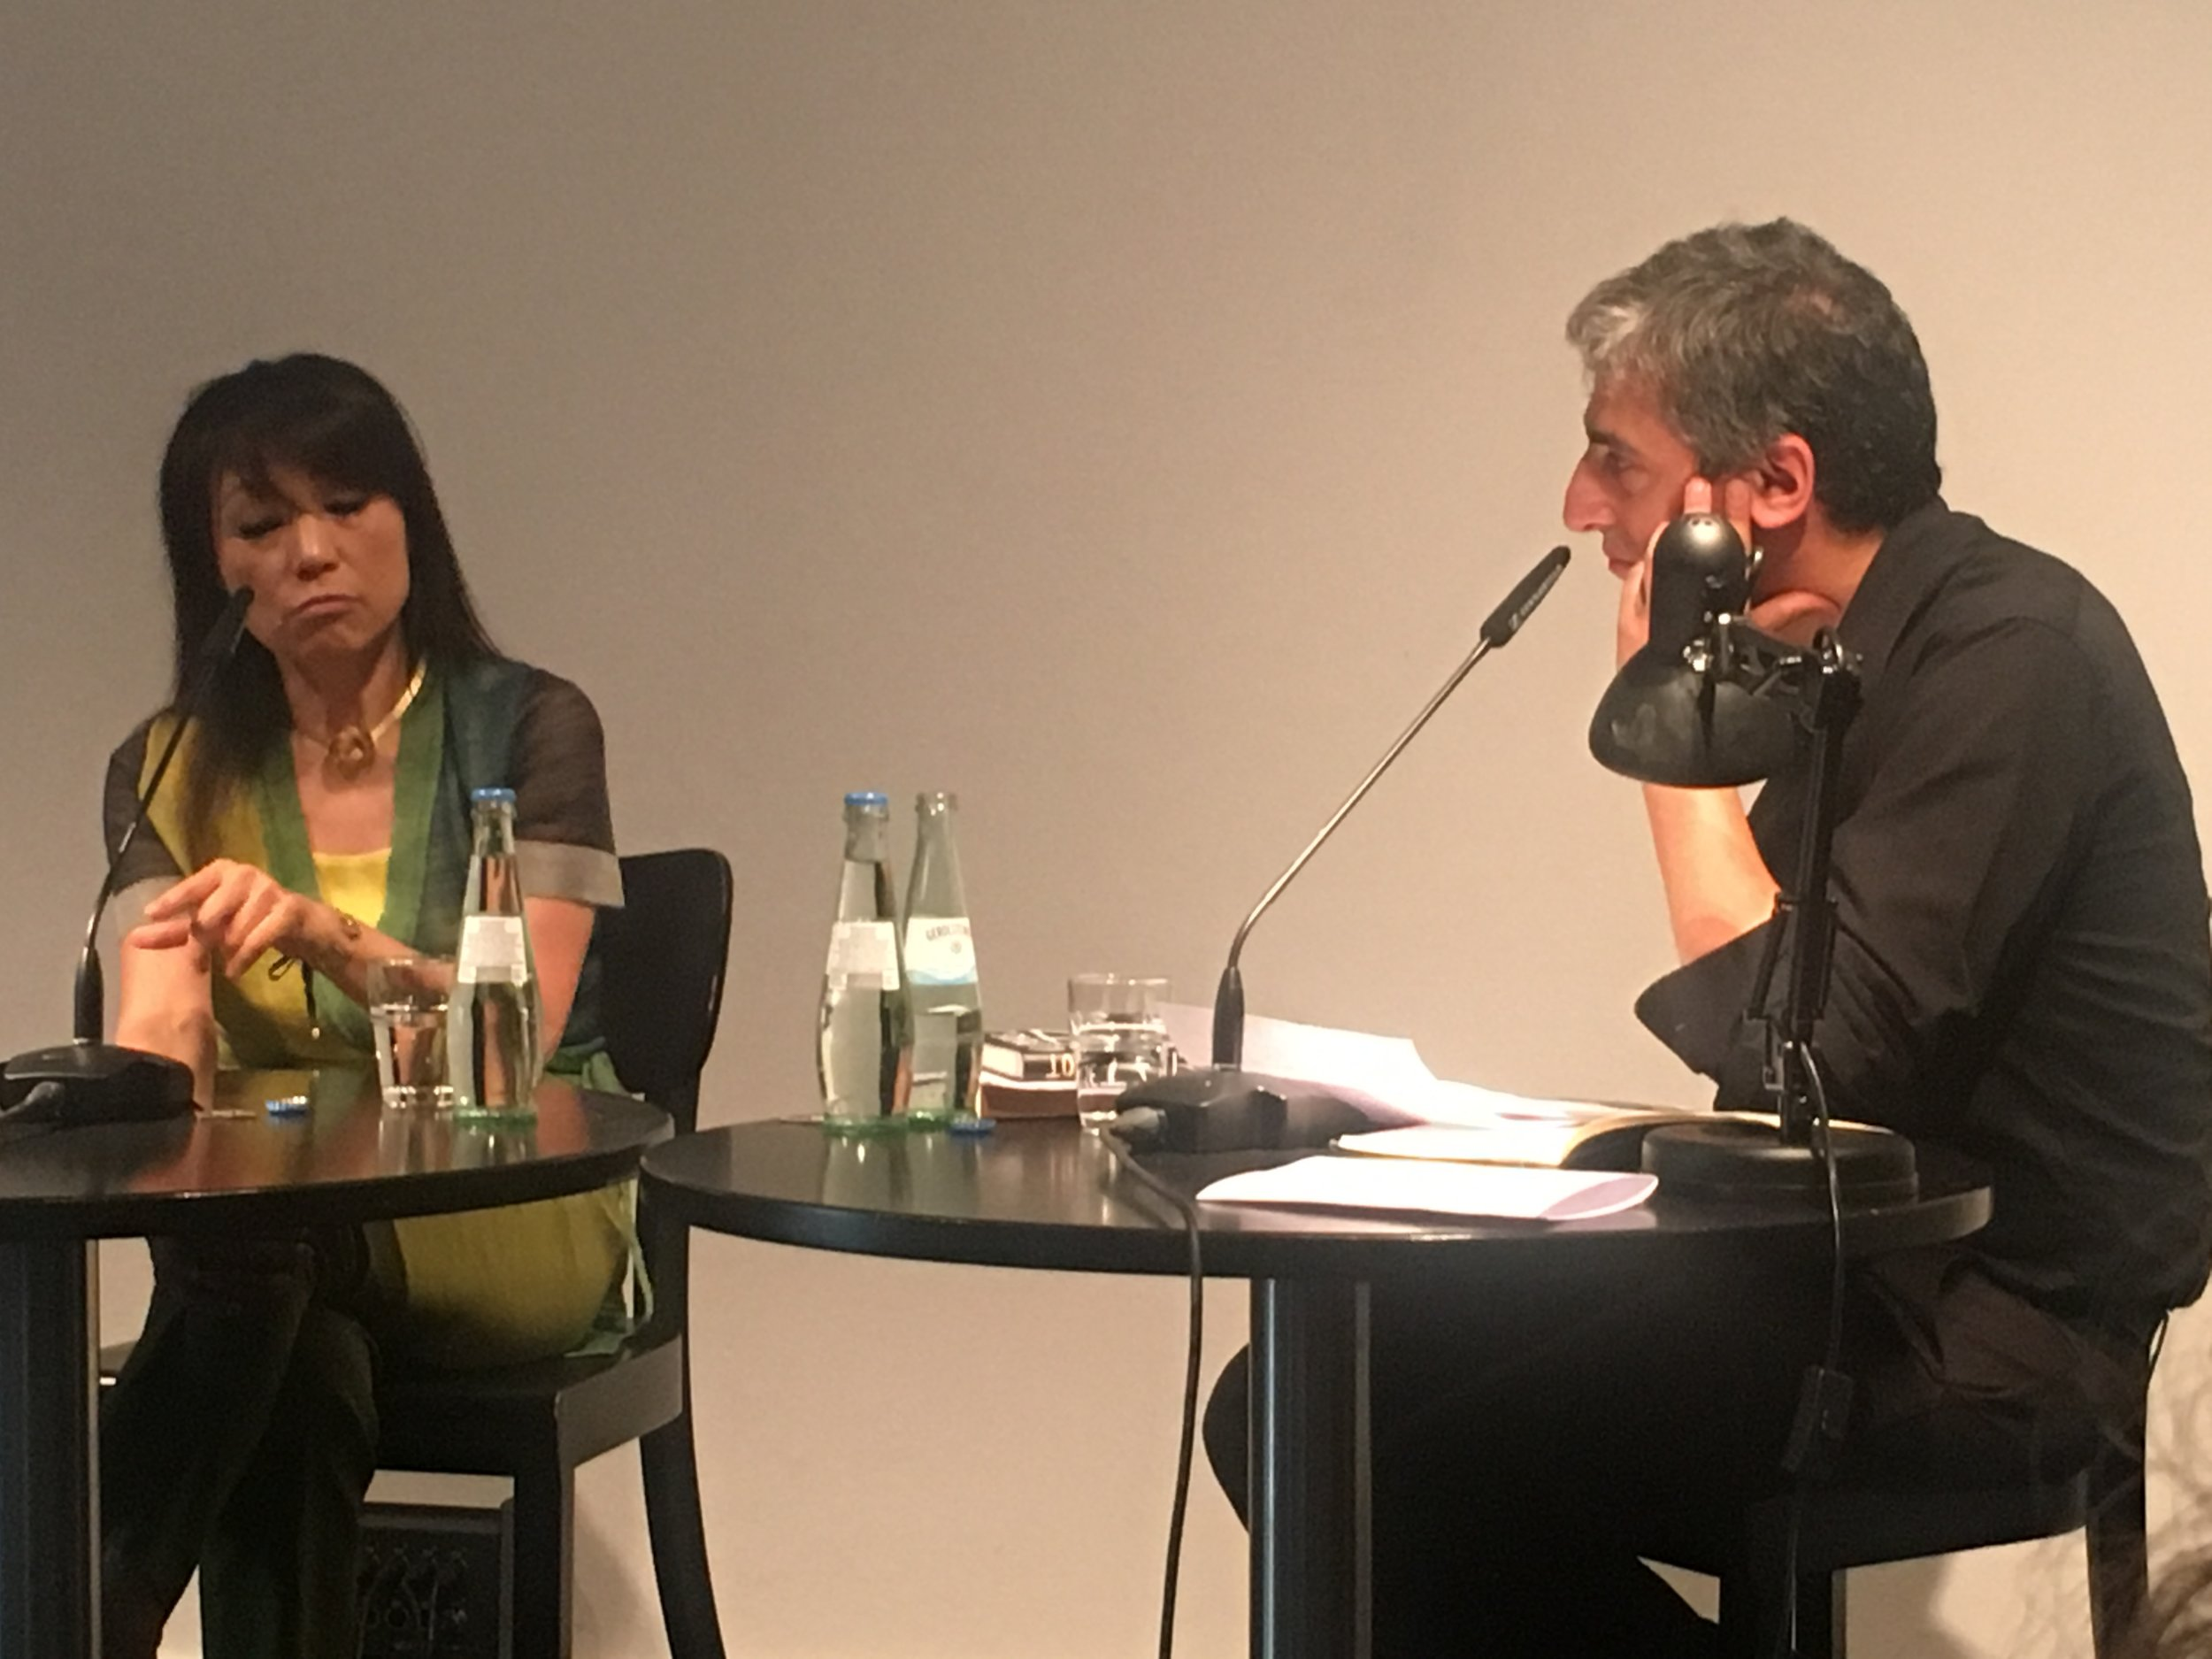 Unsuk Chin in conversation with Daniel Medin